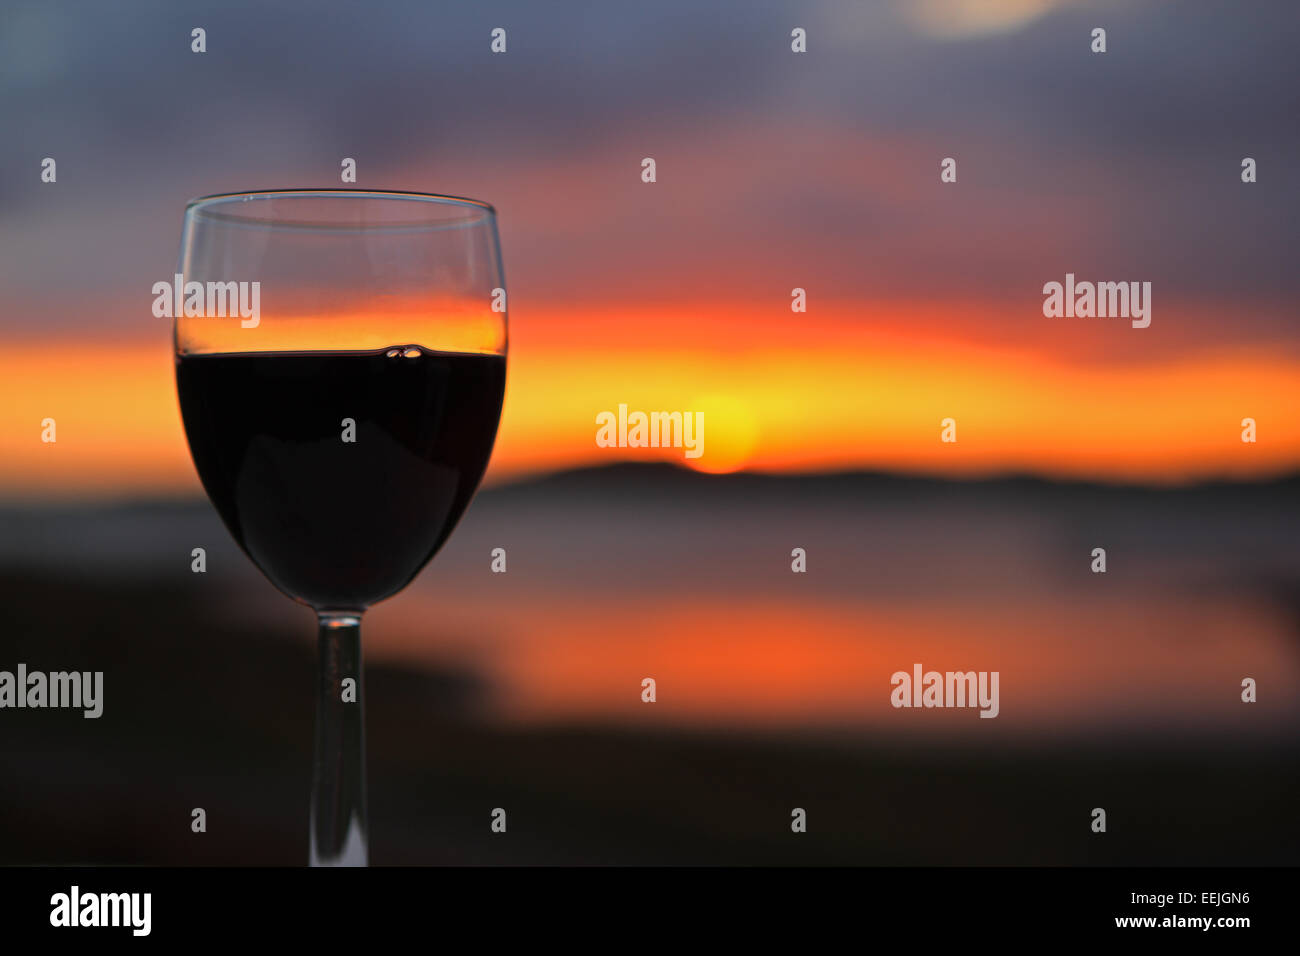 glass-of-red-wine-against-a-stunning-sun